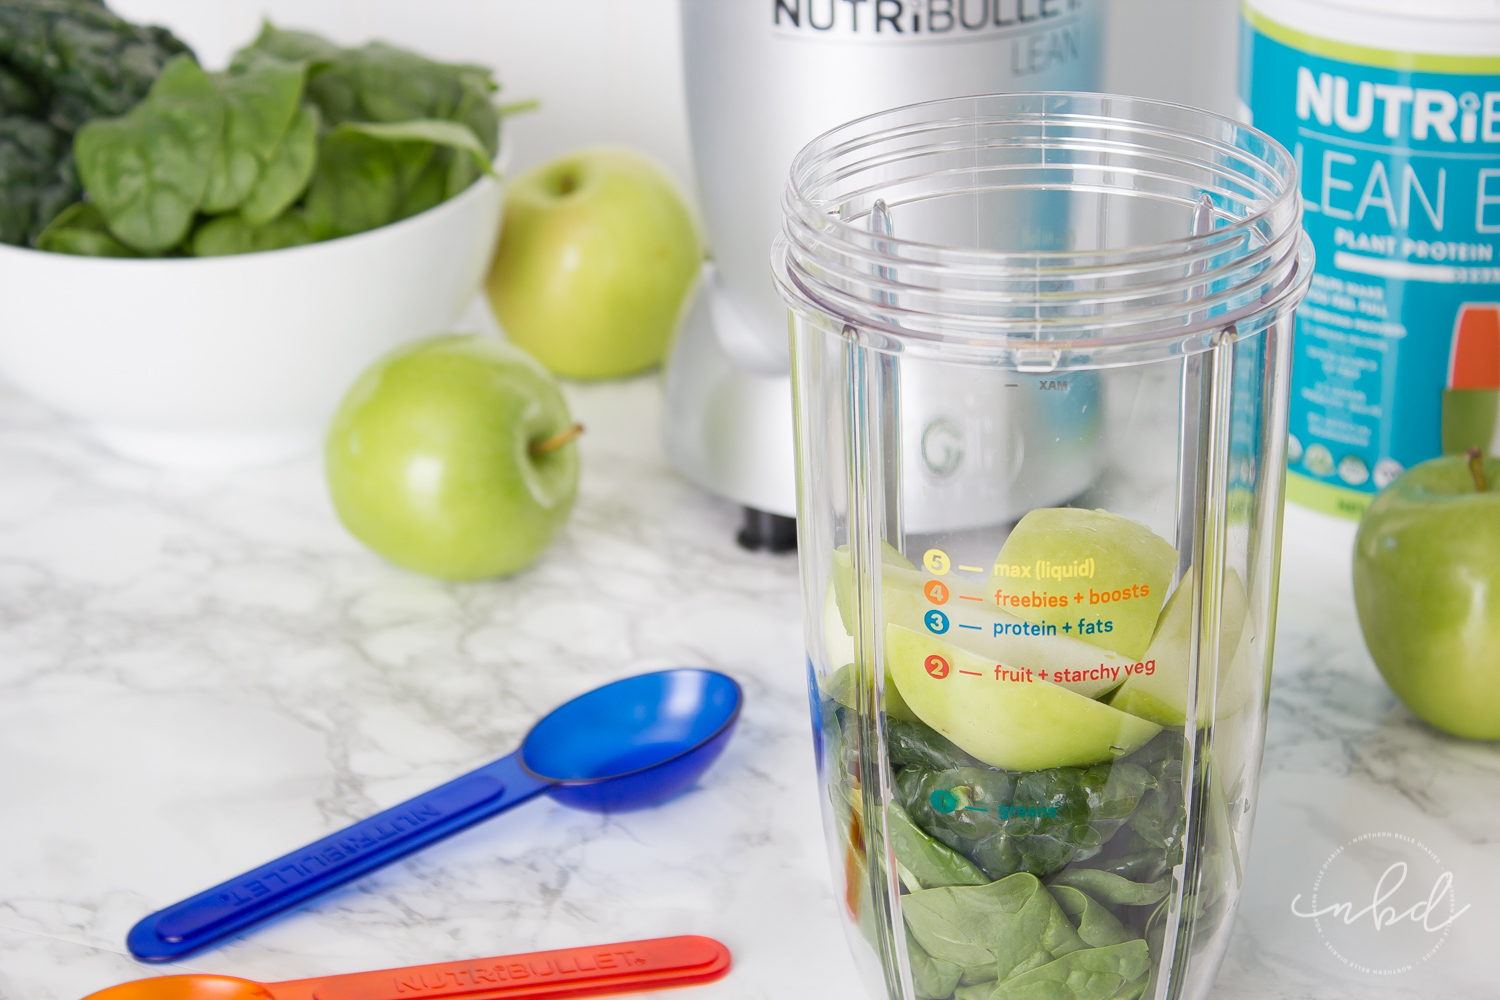 NutriBullet LEAN system 7-Day transformation